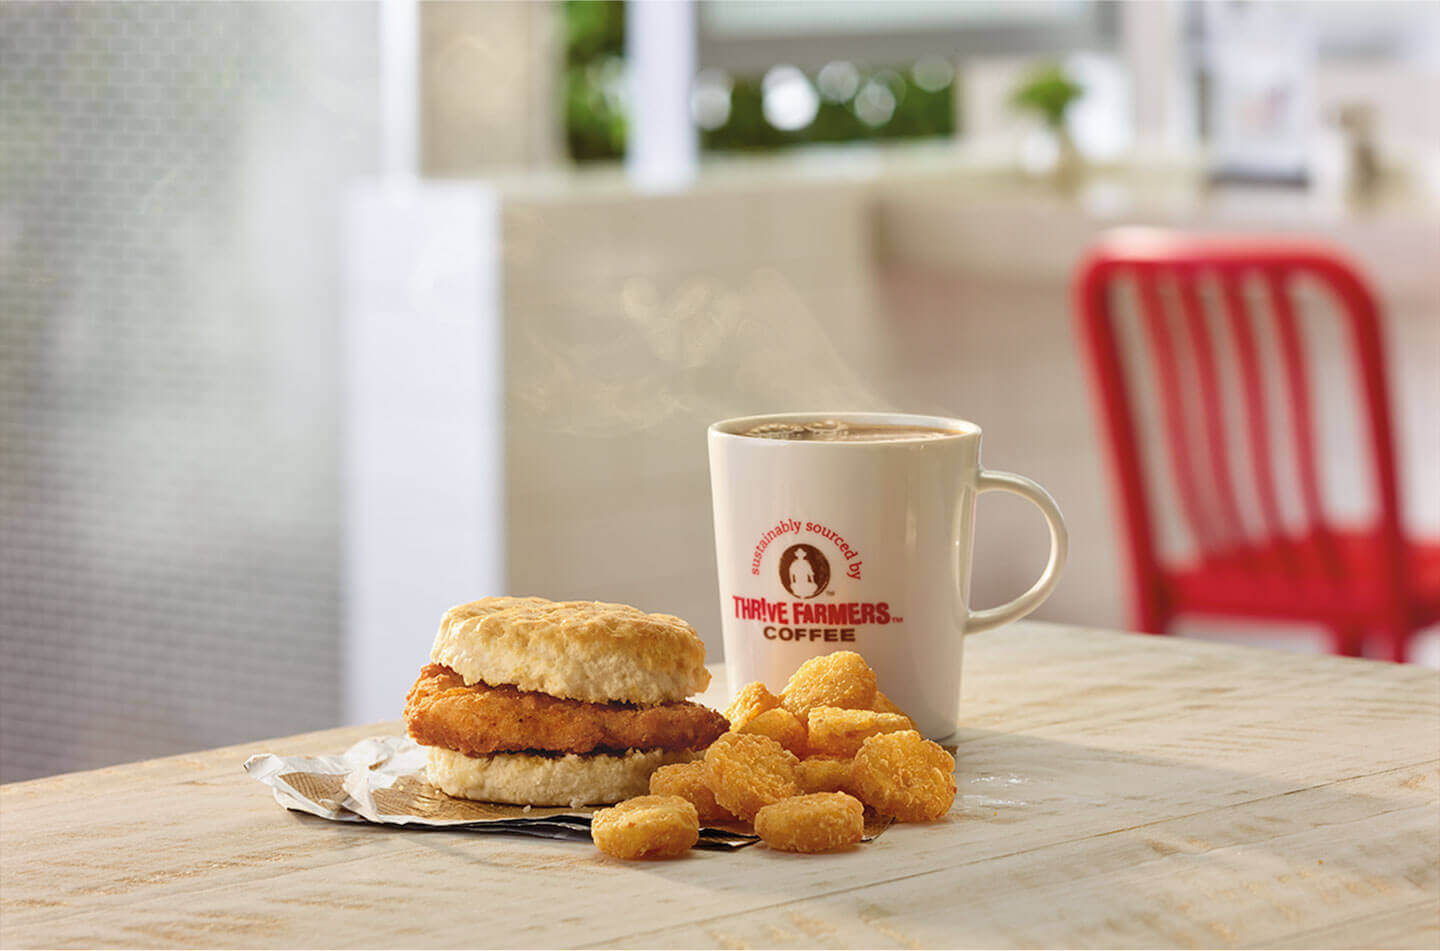 A cup of coffee, chicken biscuit and hashbrowns